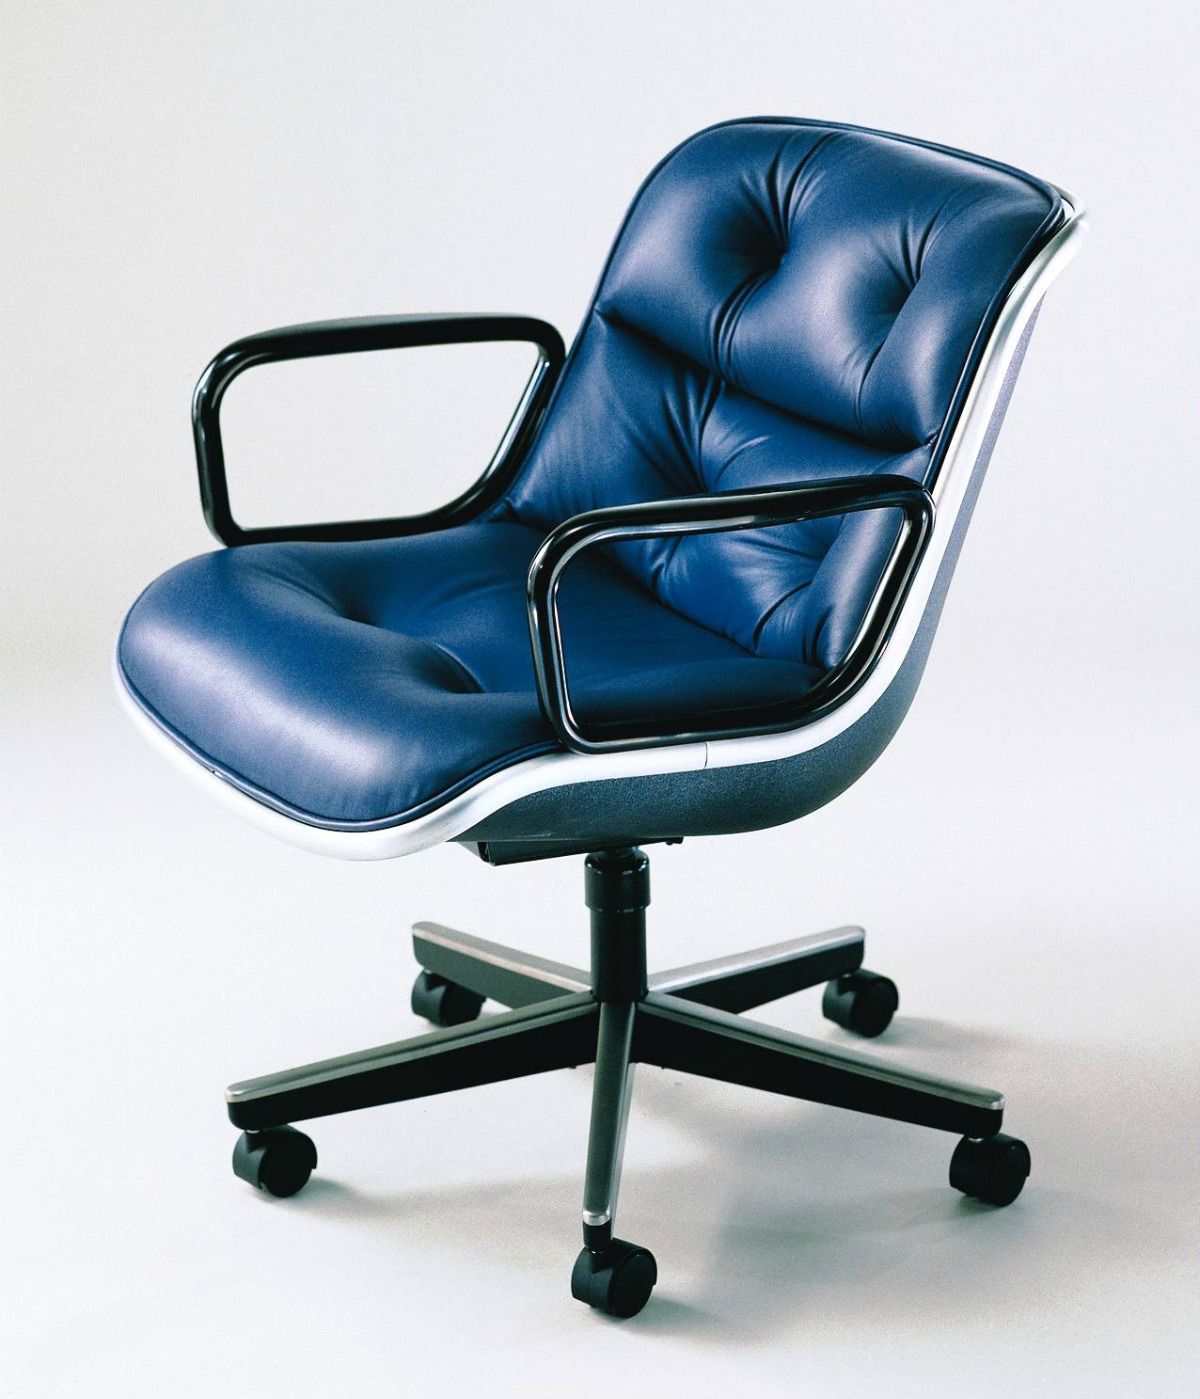 Knoll Pollock Chair Knoll Pollock Executive Chair Shop Knoll Pollock Executive